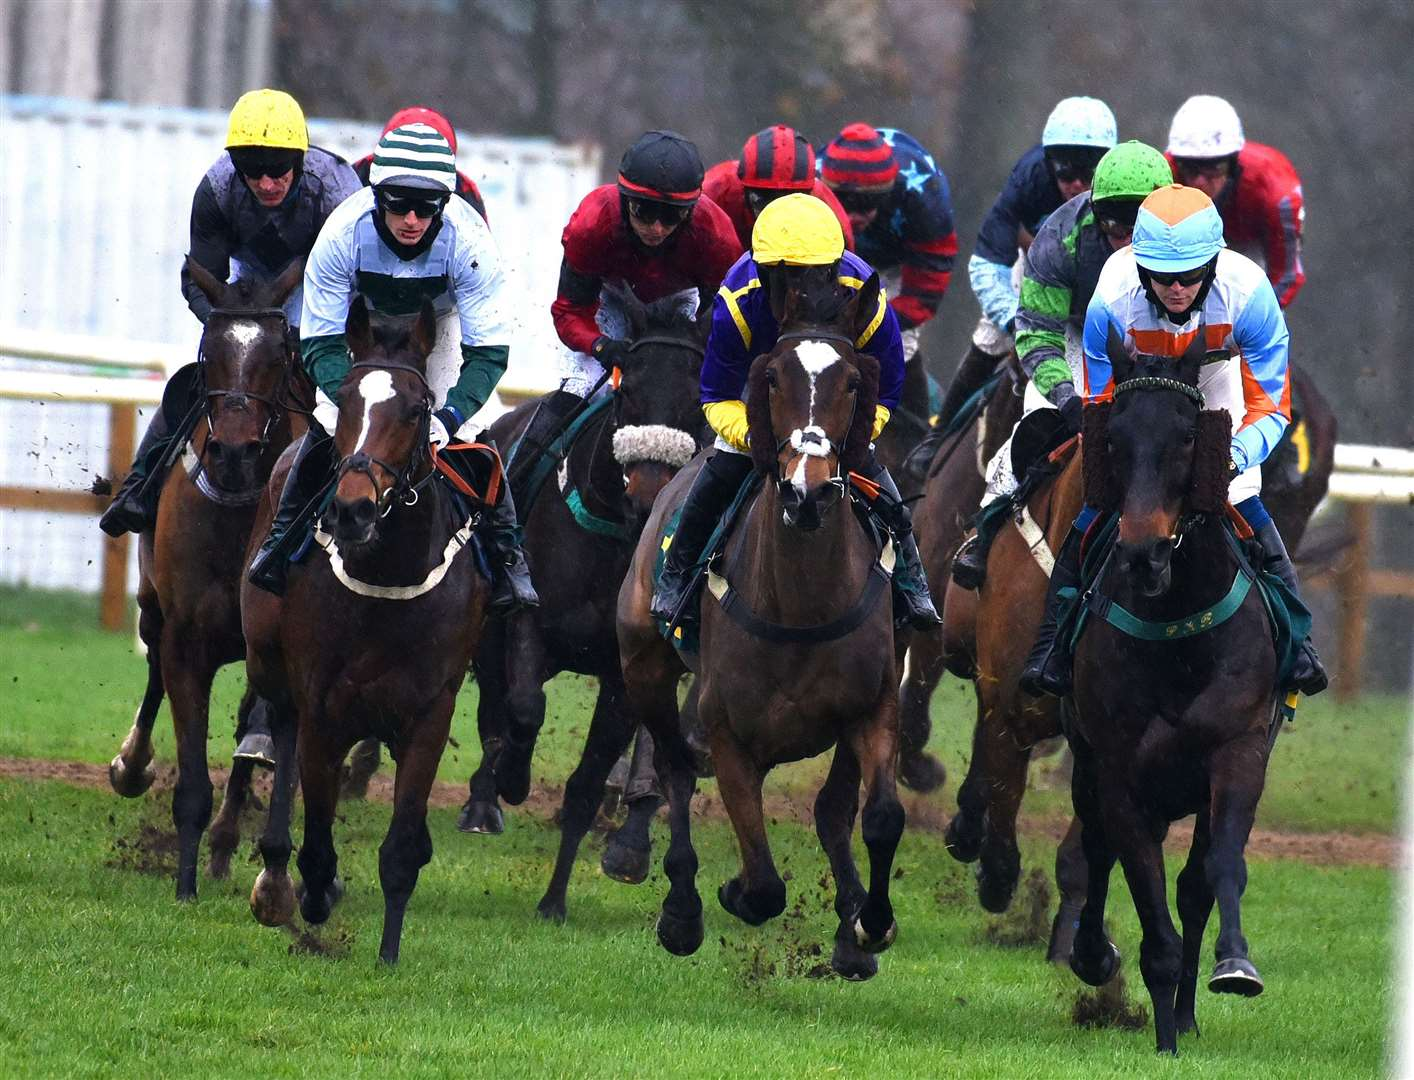 Action from the St.Andrews Day Race Meeting at Fakenham Racecourse